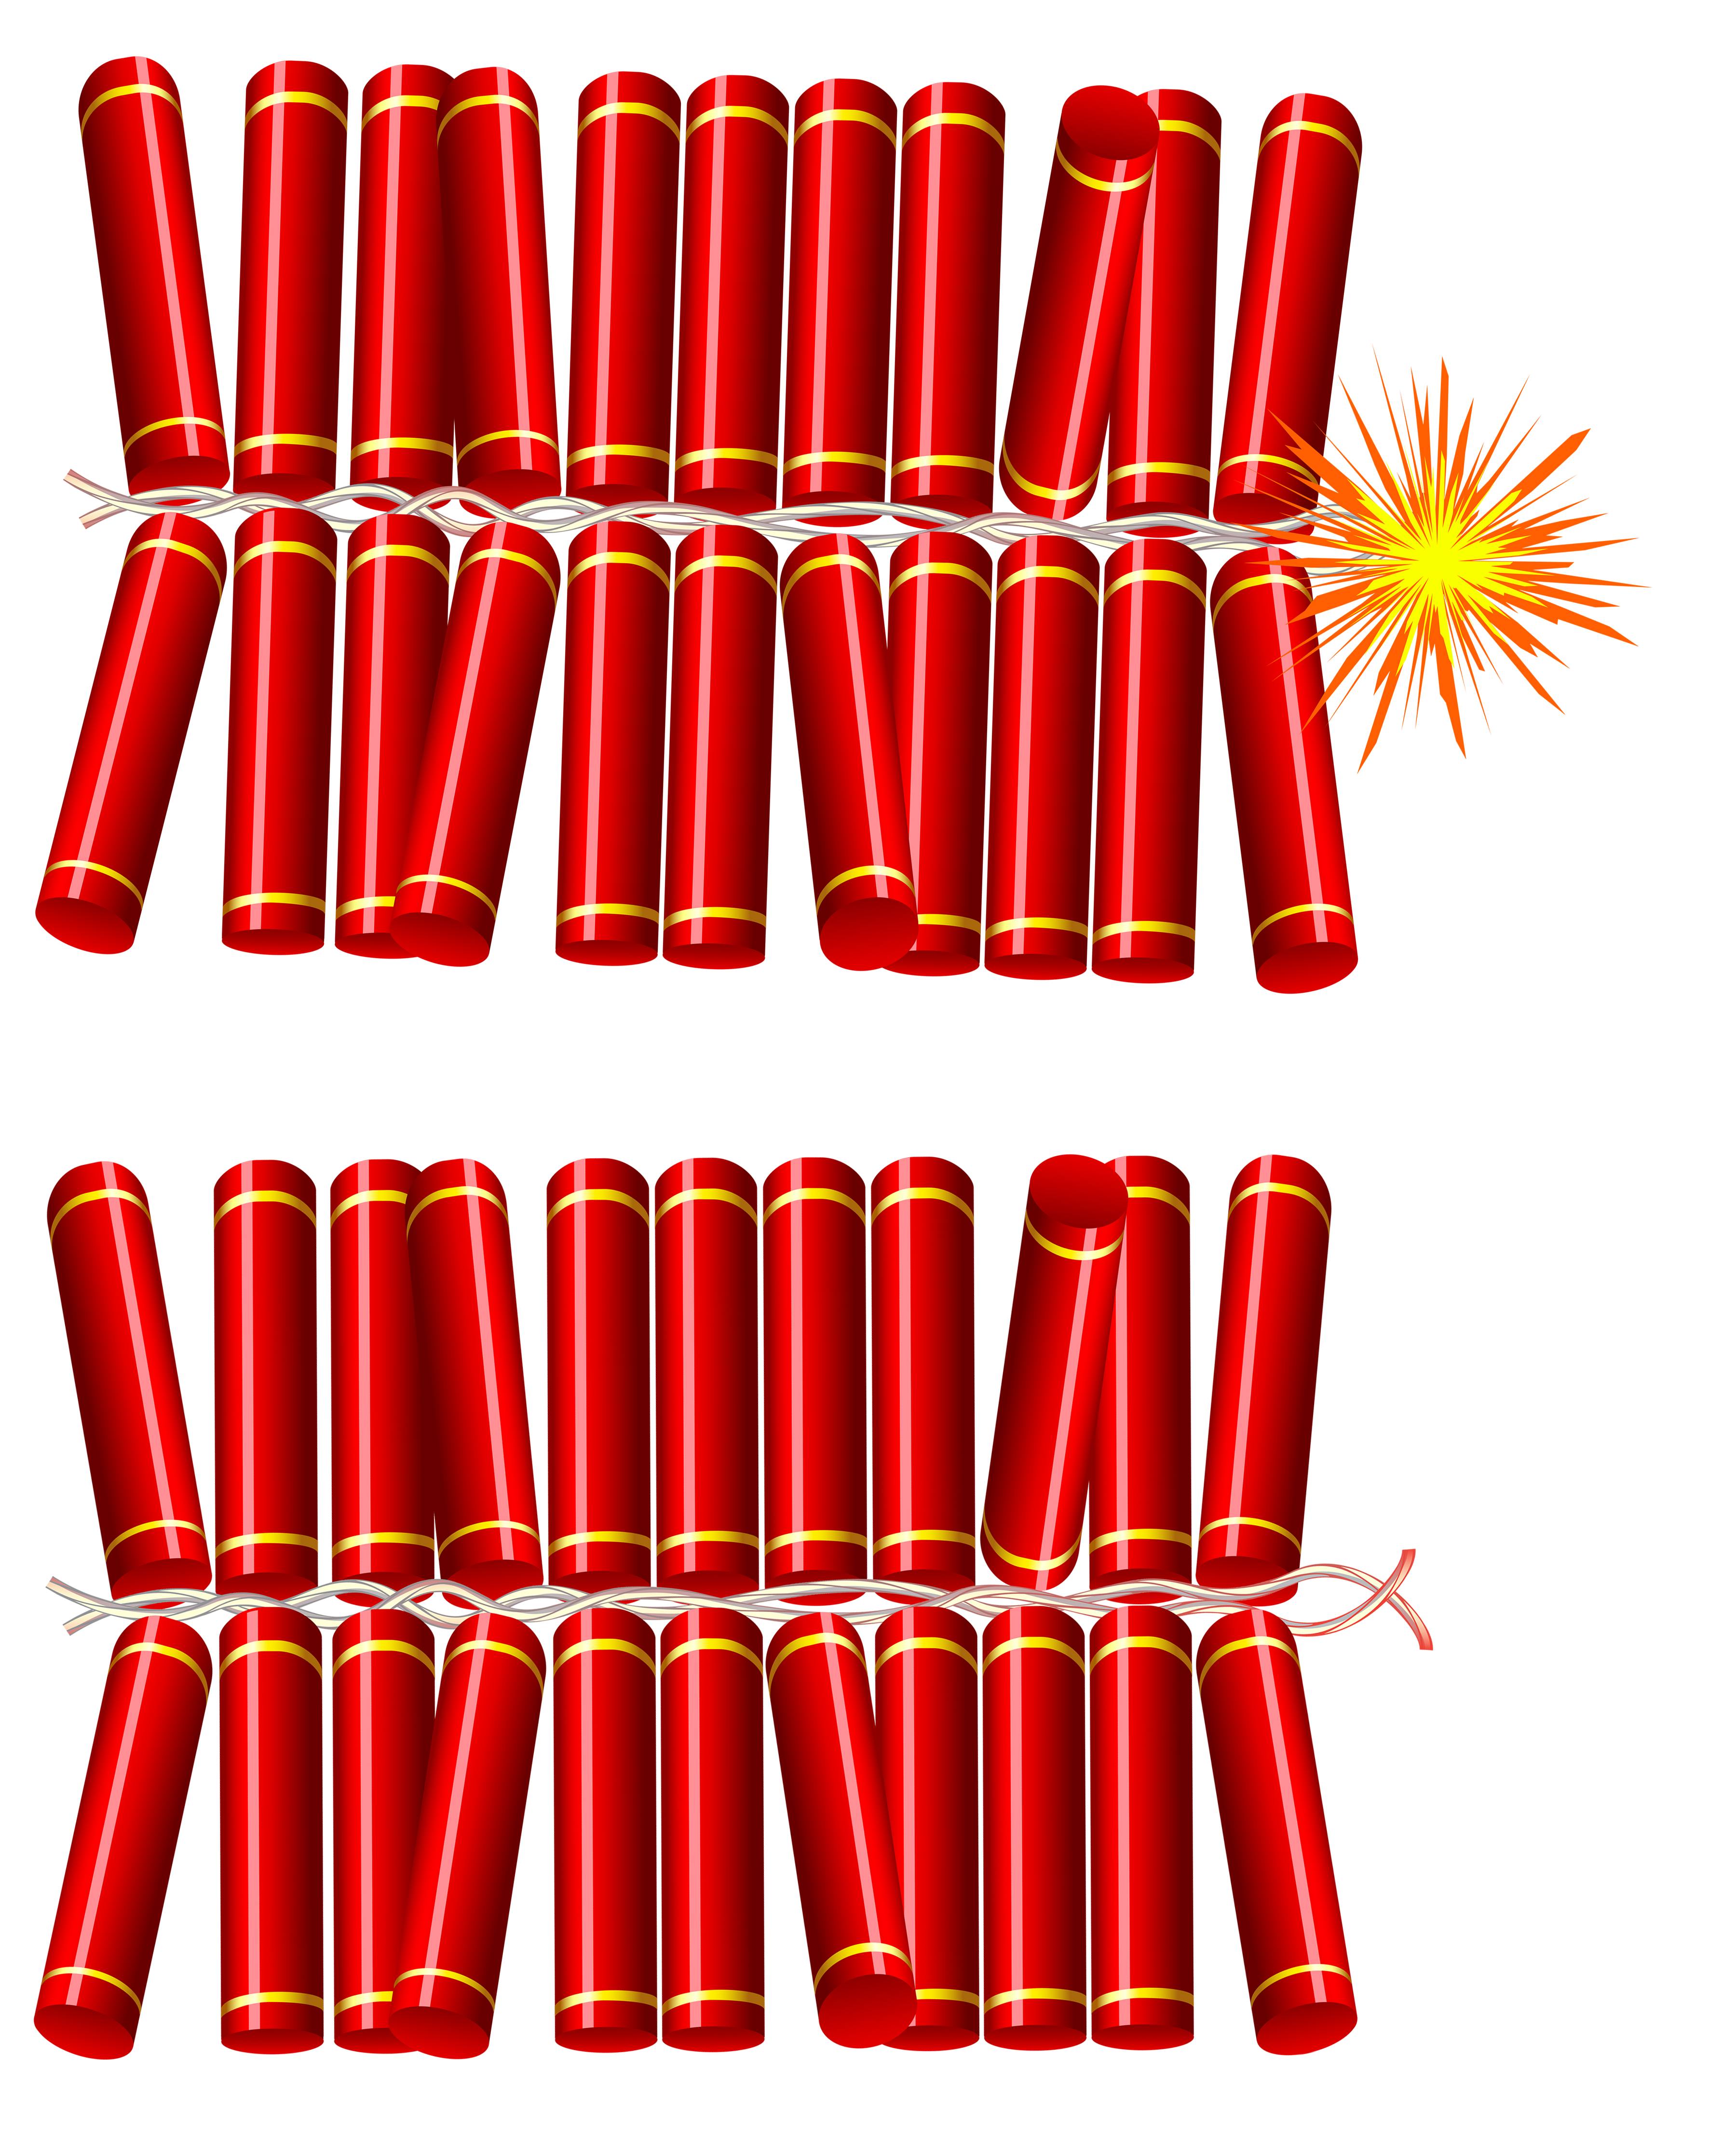 Goldfish clipart cracker cheese. Christmas firecrackers png clip